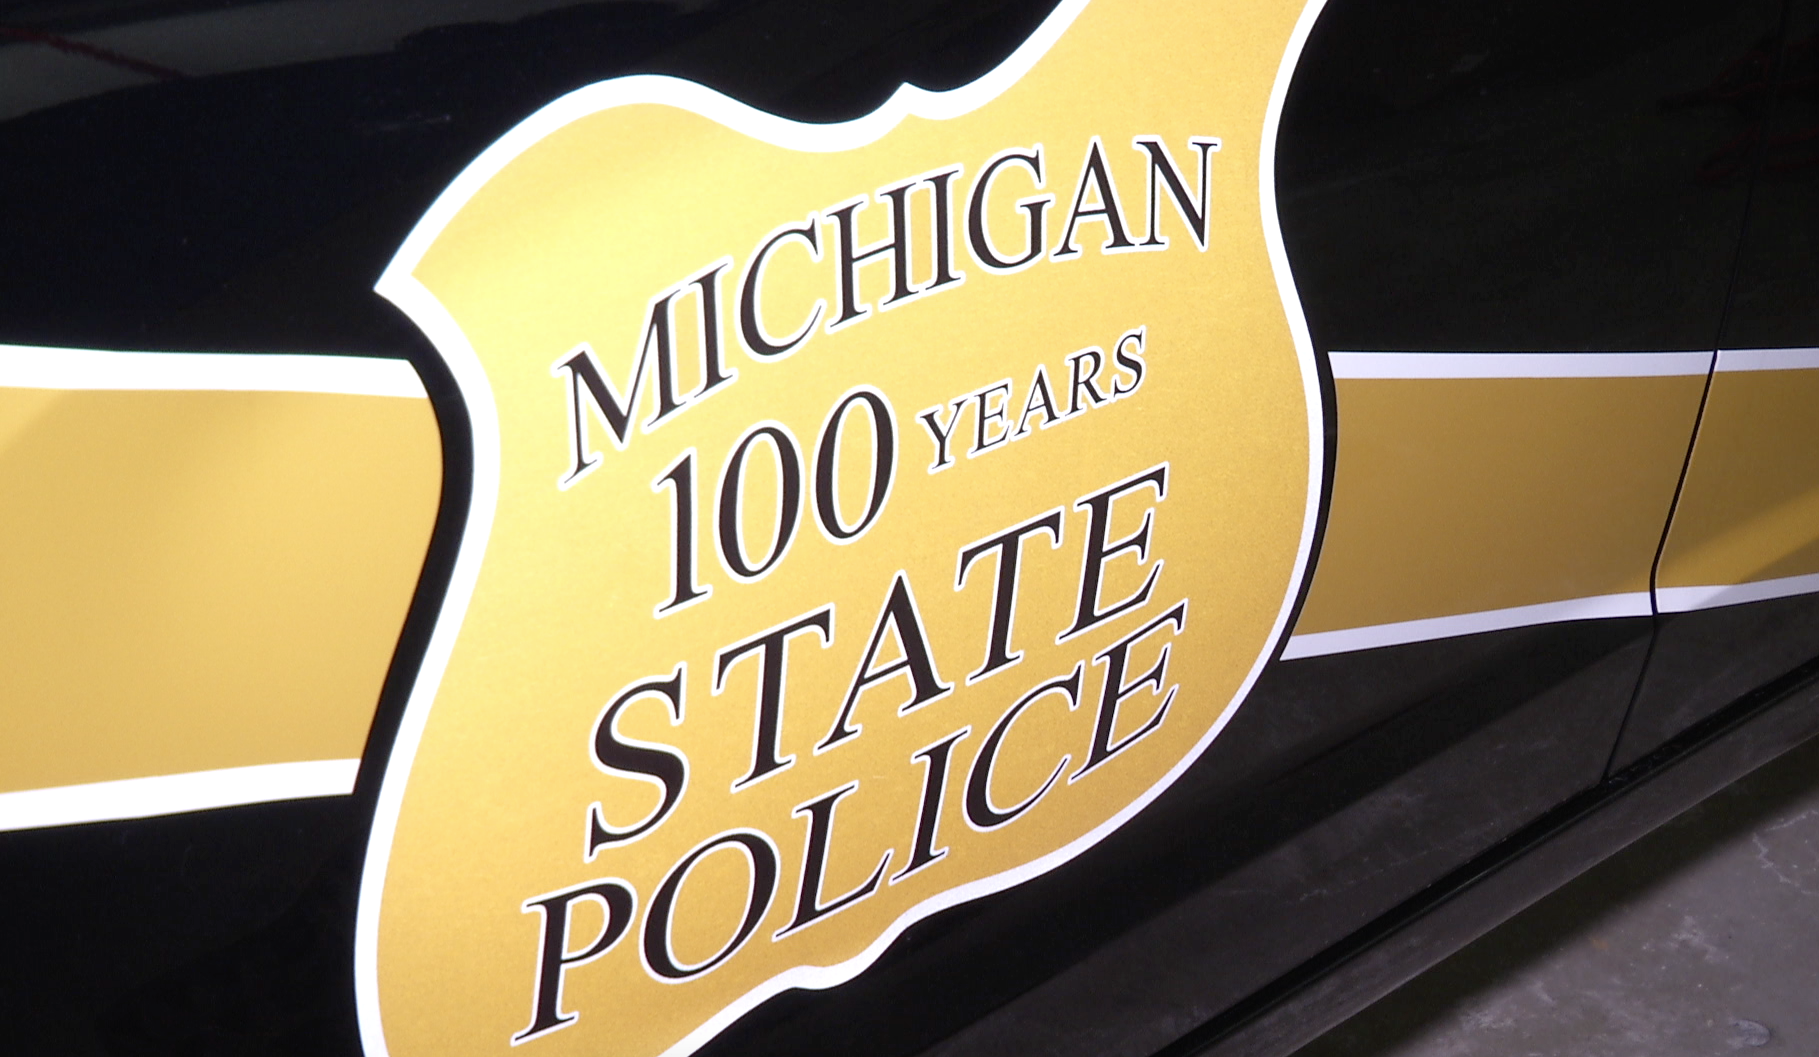 Michigan Sate Police Celebrate 100 Years